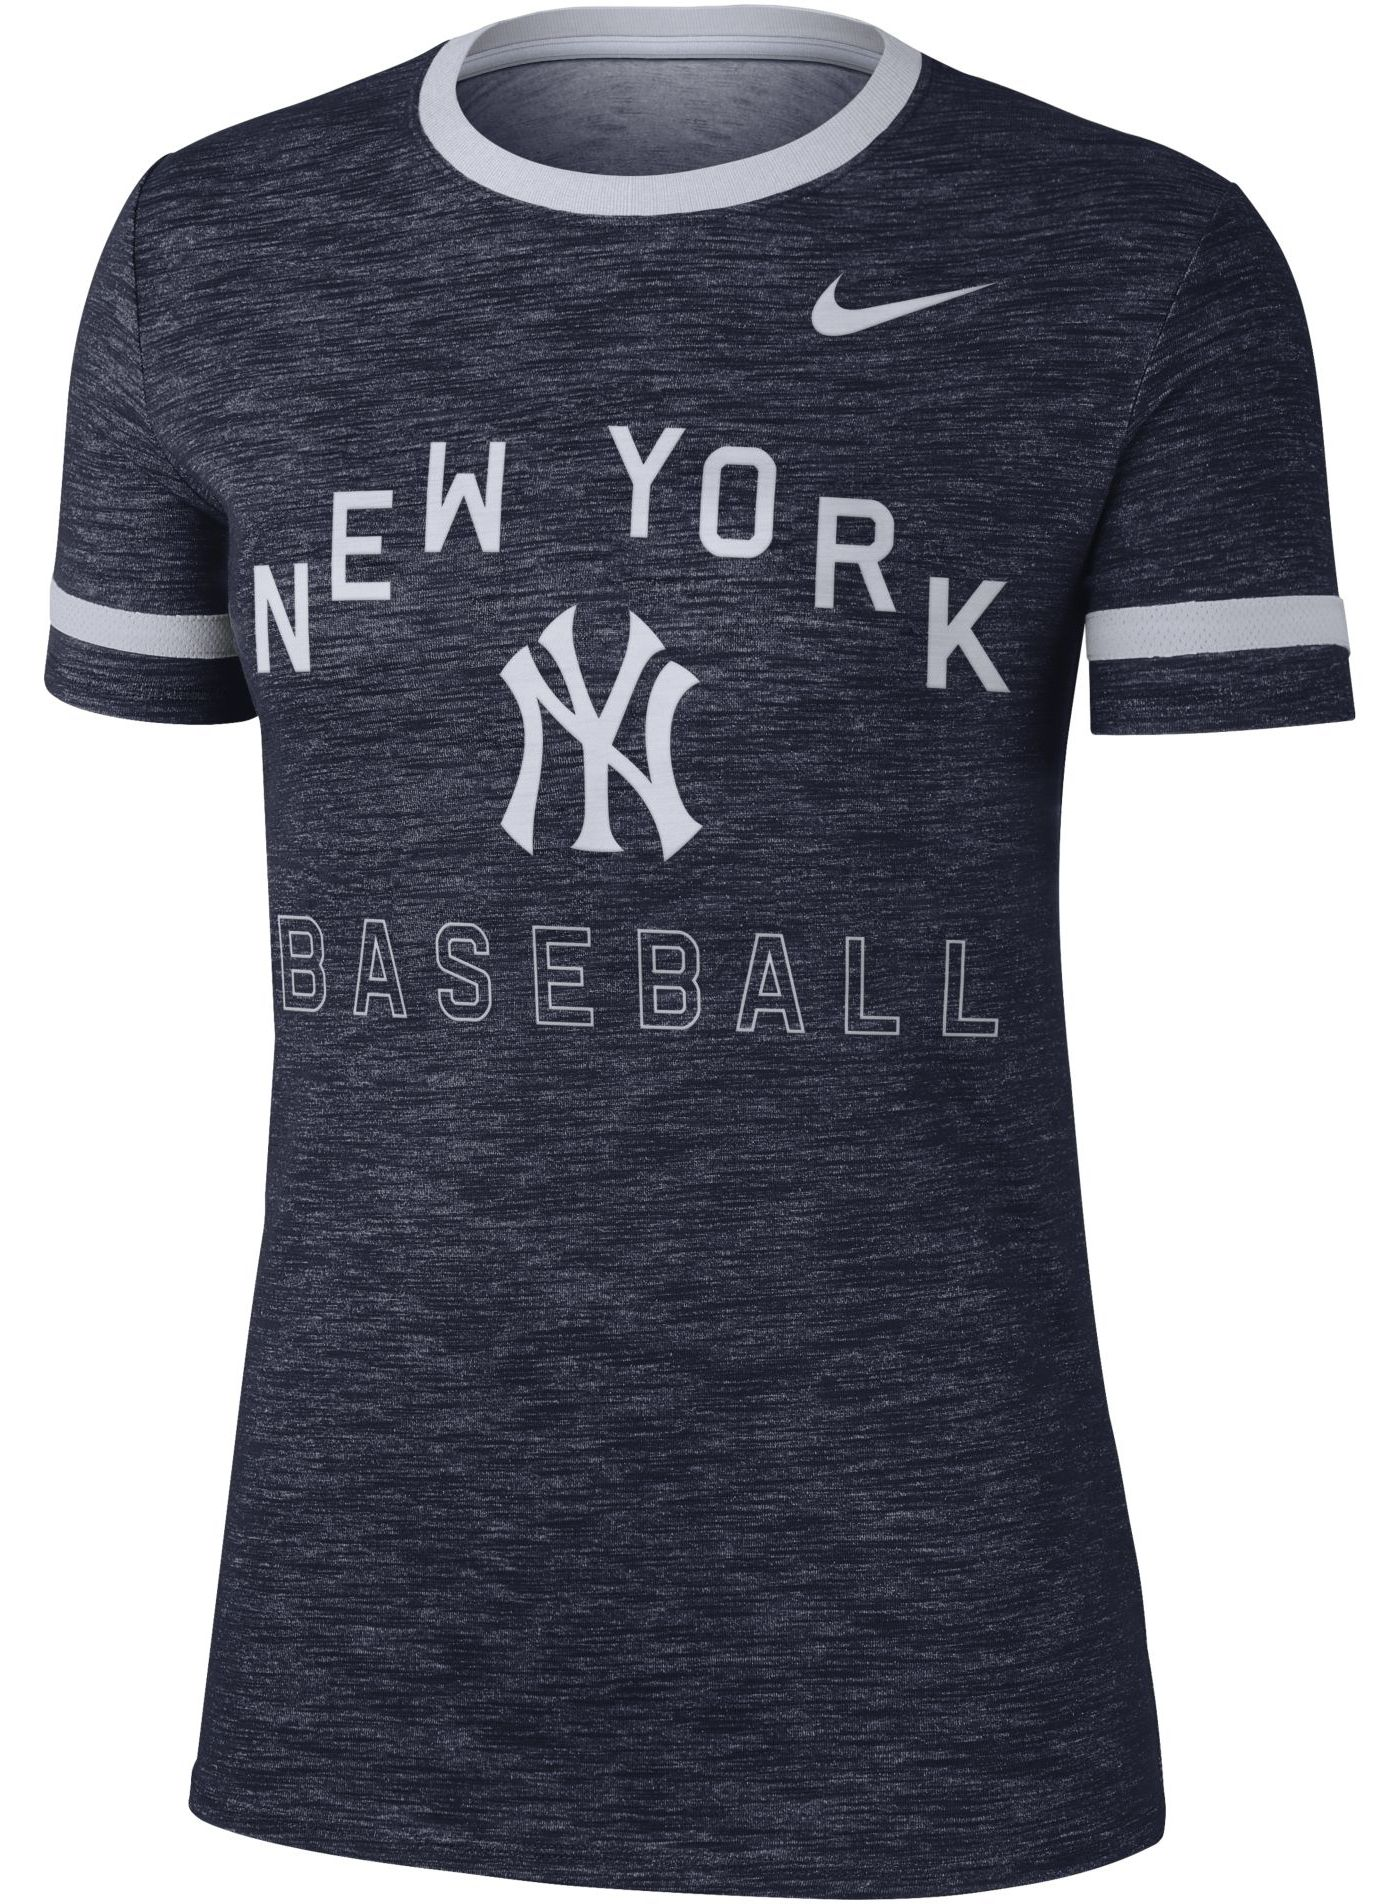 Nike Women's New York Yankees Dri-FIT Slub Crew T-Shirt